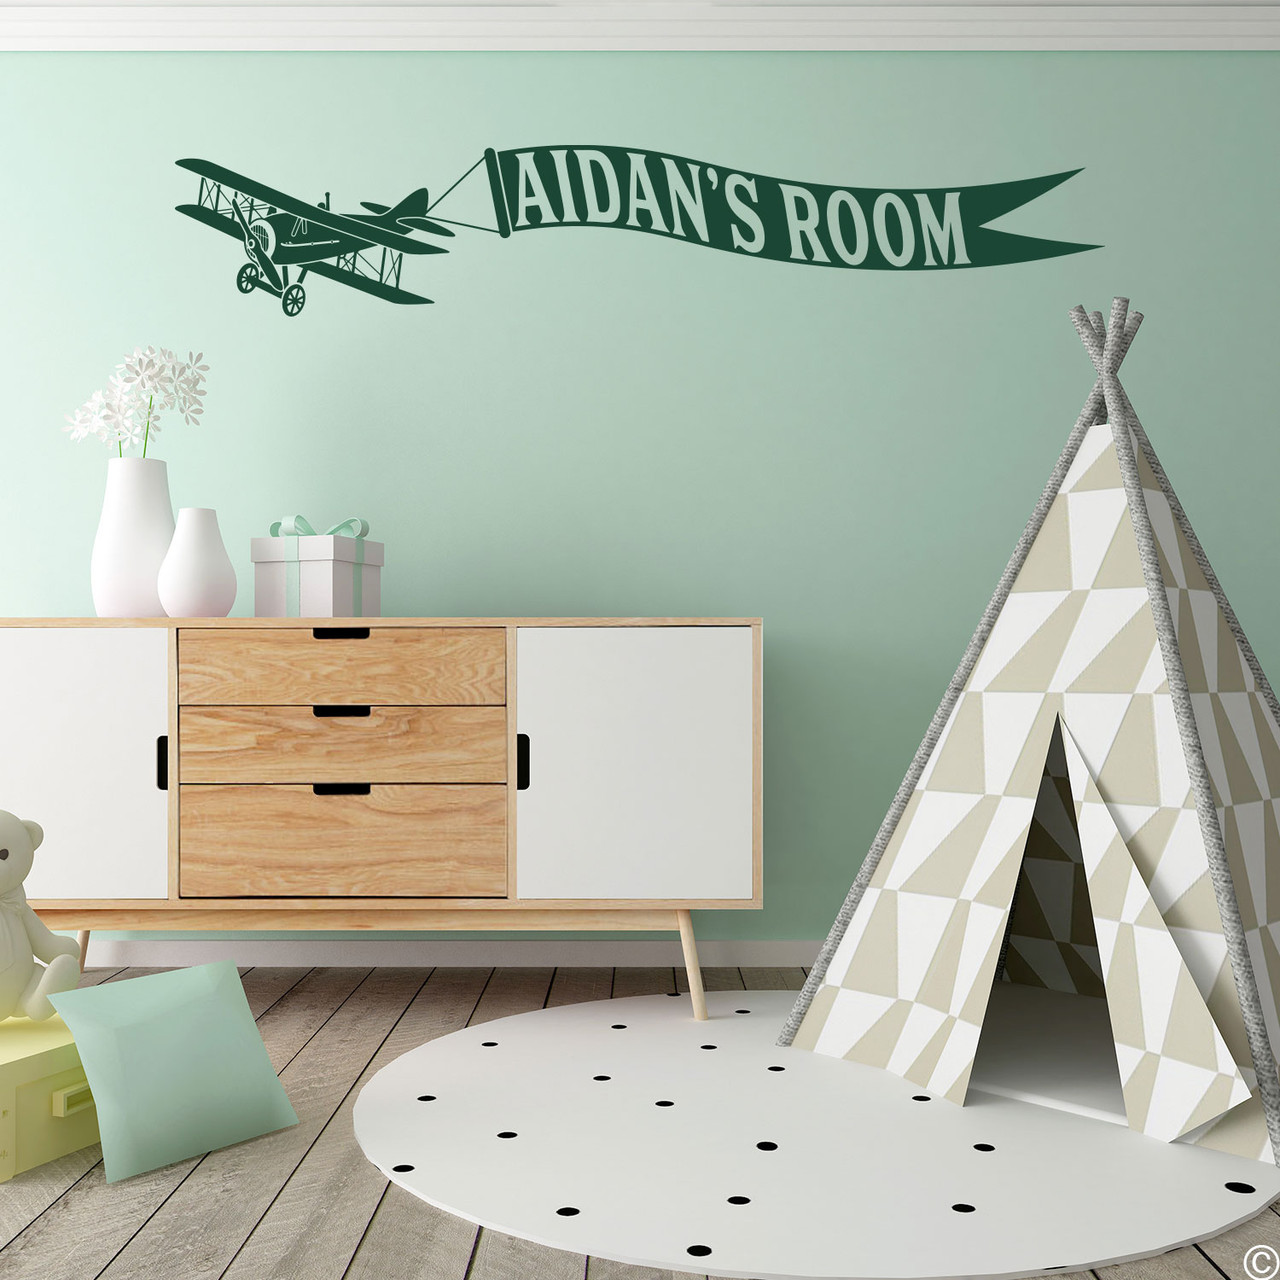 Biplane wall decal with customizable name banner on a kids playroom wall in dark green vinyl.